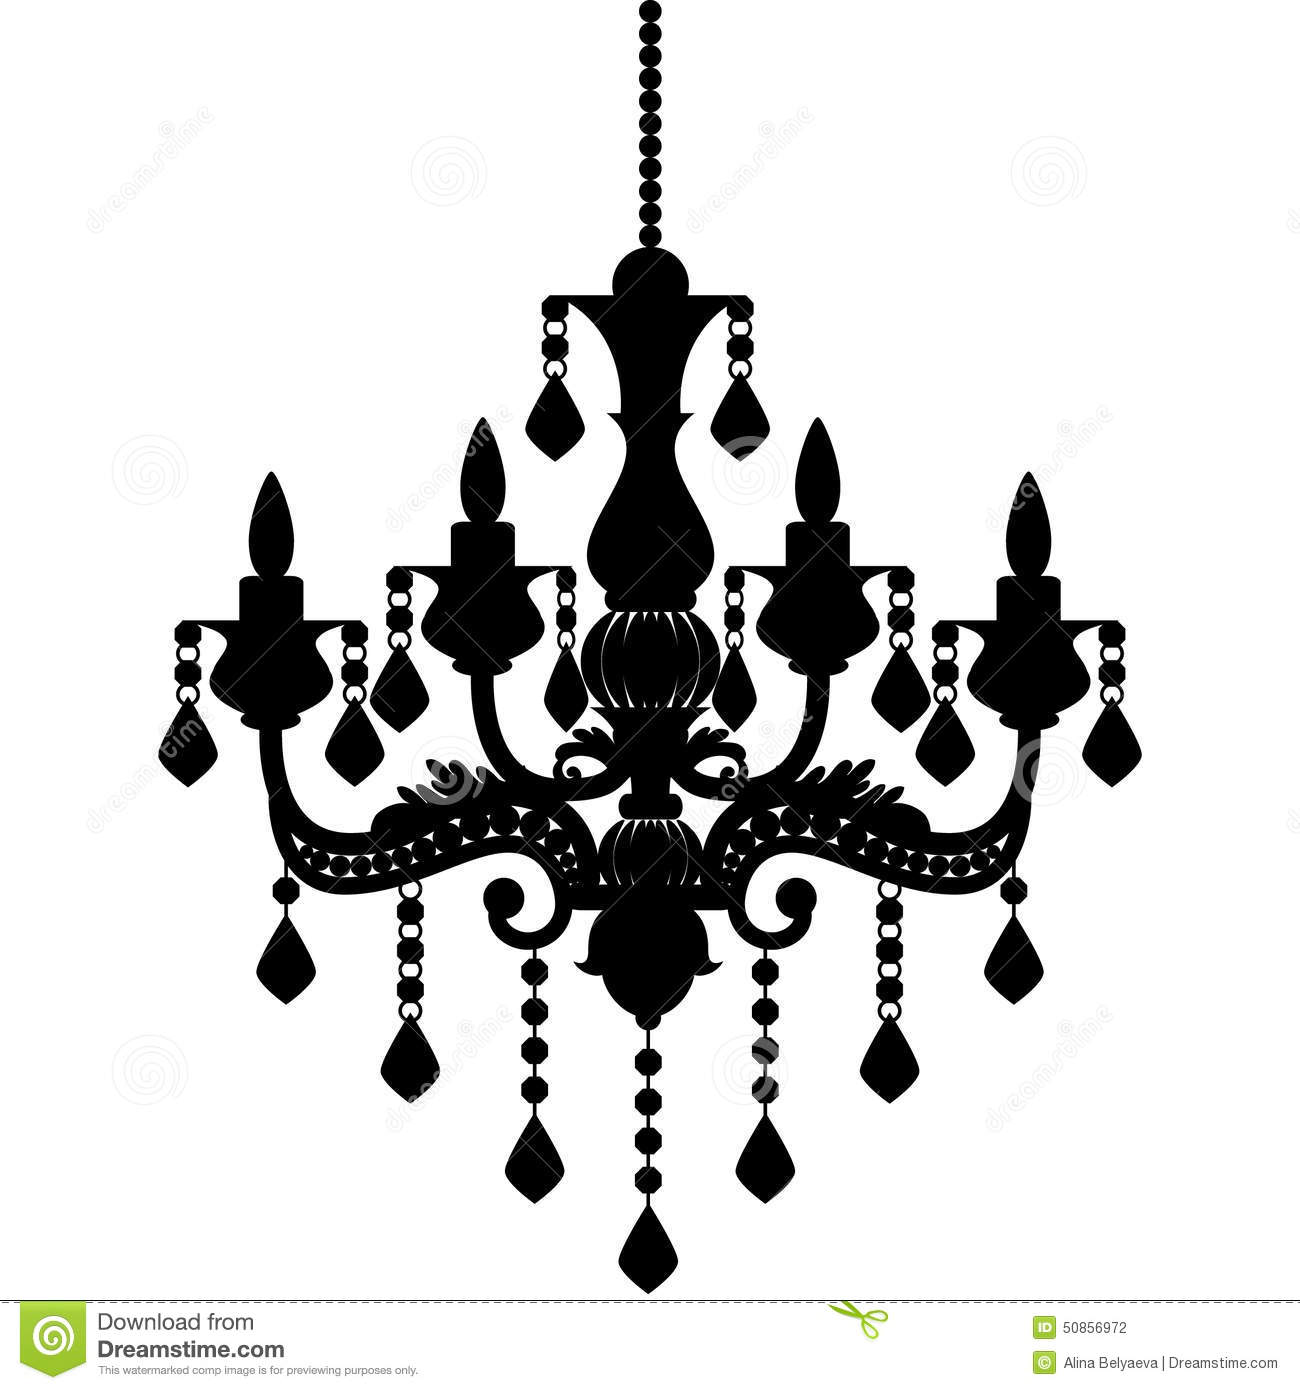 Black chandelier silhouette isolated white stock illustrations chandelier silhouette isolated on white background vector illustration stock photography mozeypictures Choice Image